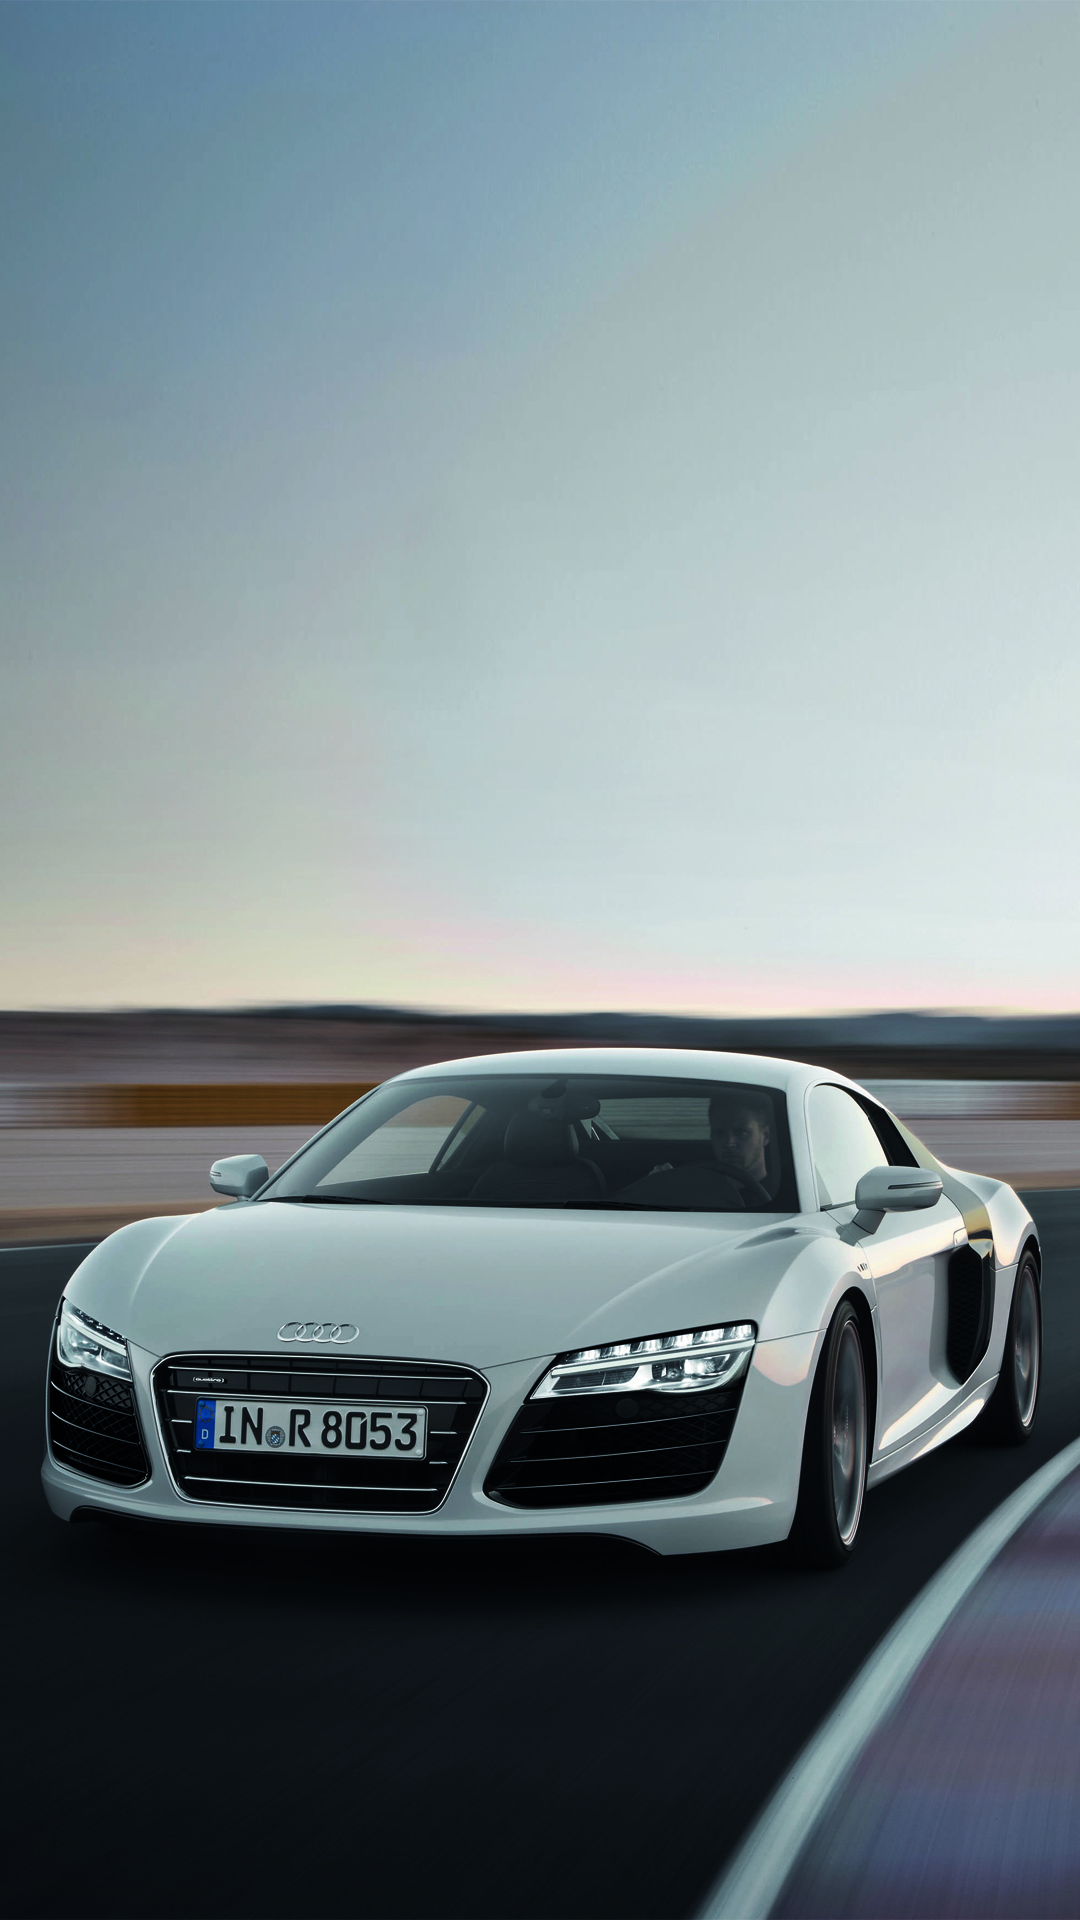 audi r8 htc one wallpaper - best htc one wallpapers